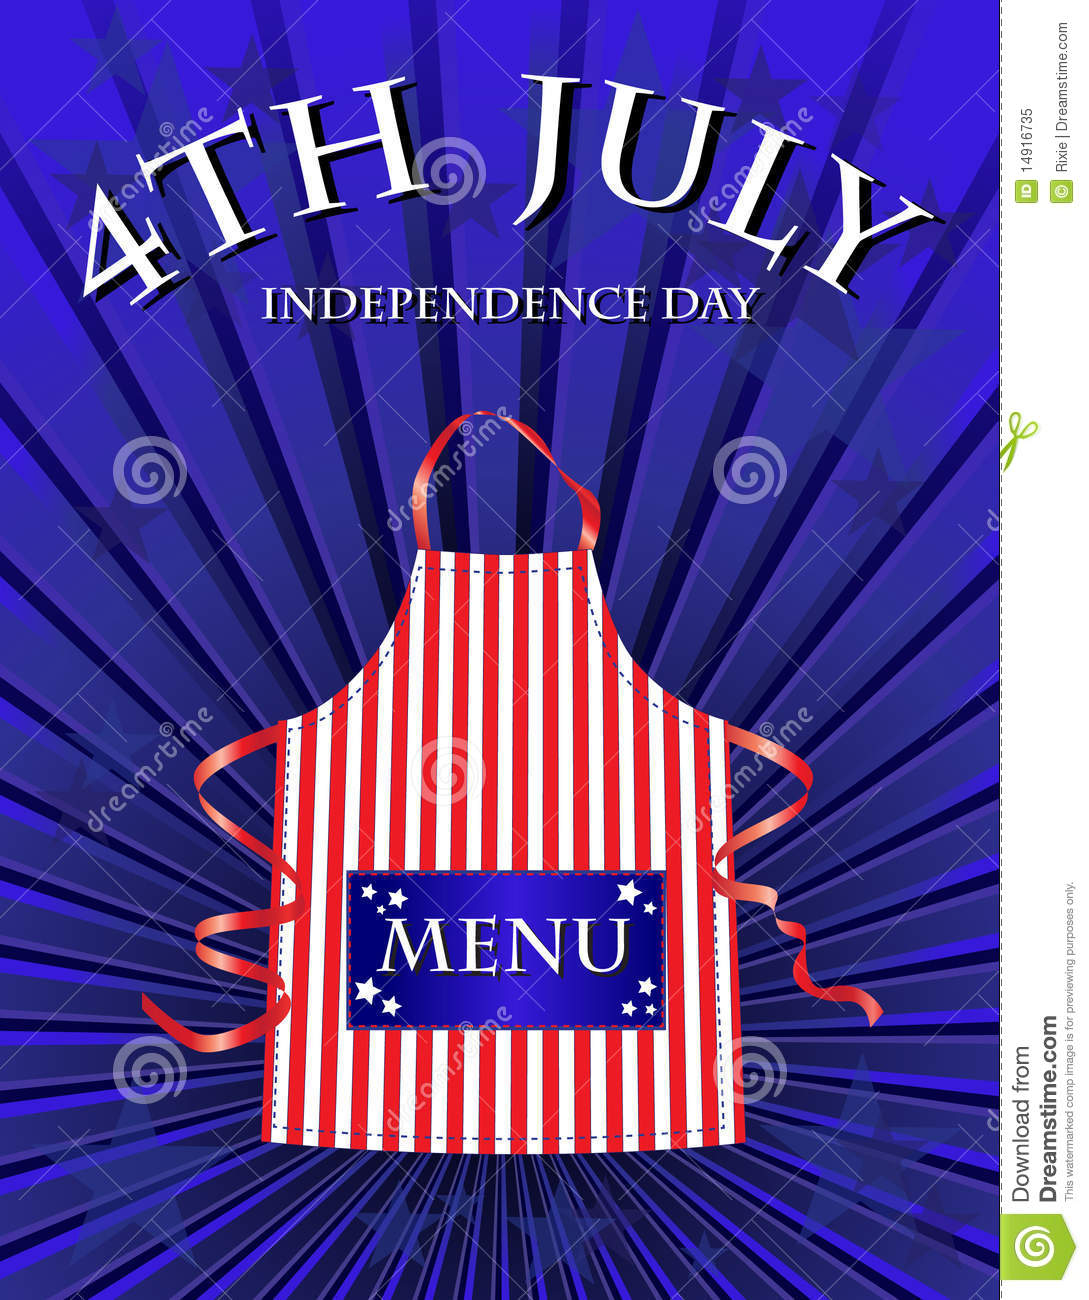 4th july menu royalty free stock photo image 14916735 for 4th of july menu template